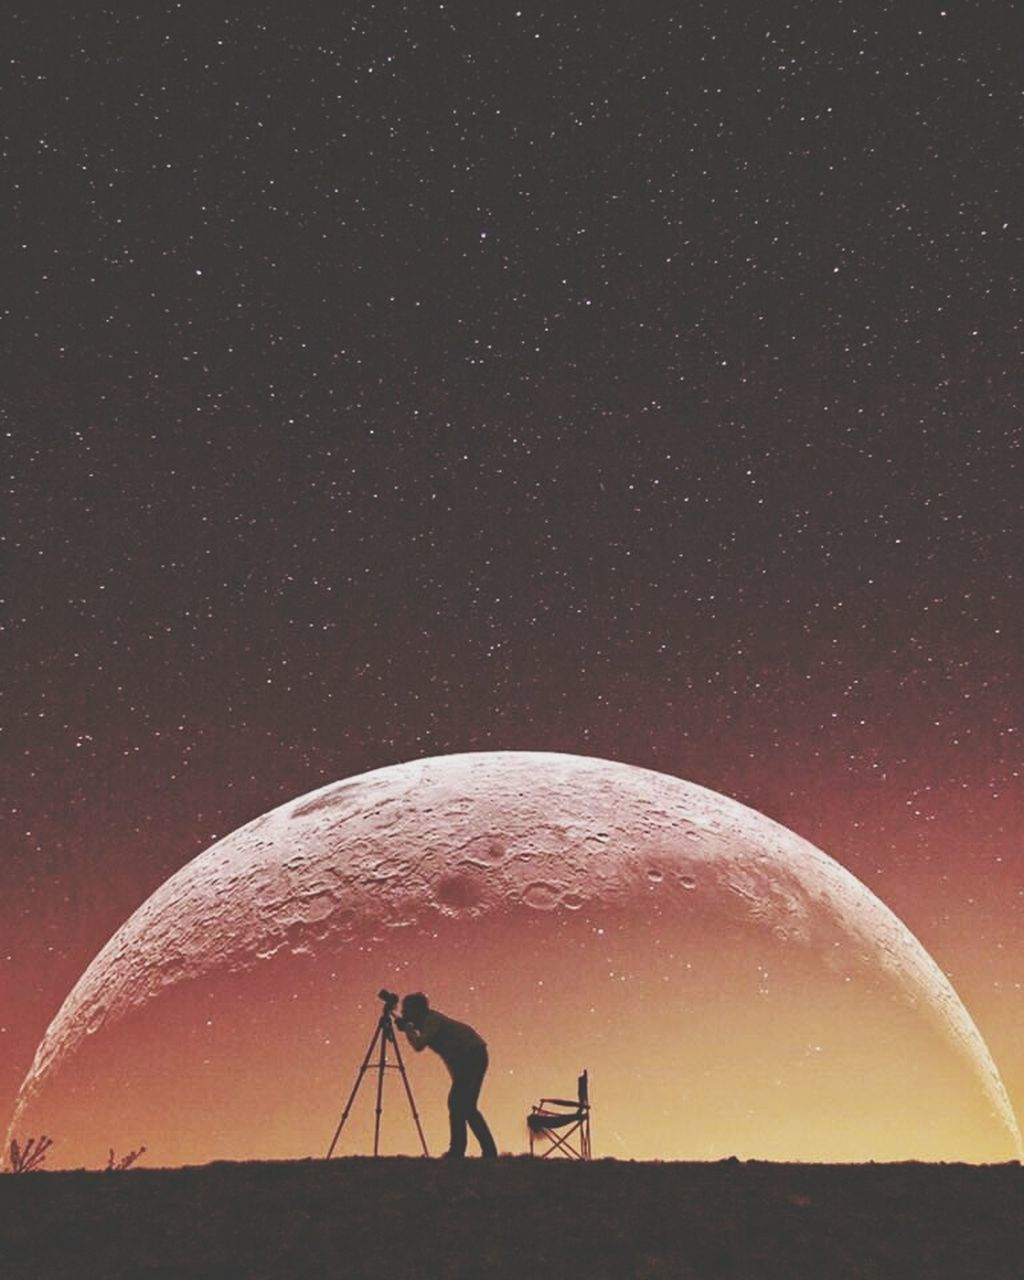 astronomy, real people, star - space, night, beauty in nature, nature, silhouette, men, leisure activity, outdoors, sky, technology, one person, scenics, astronomy telescope, space, galaxy, people